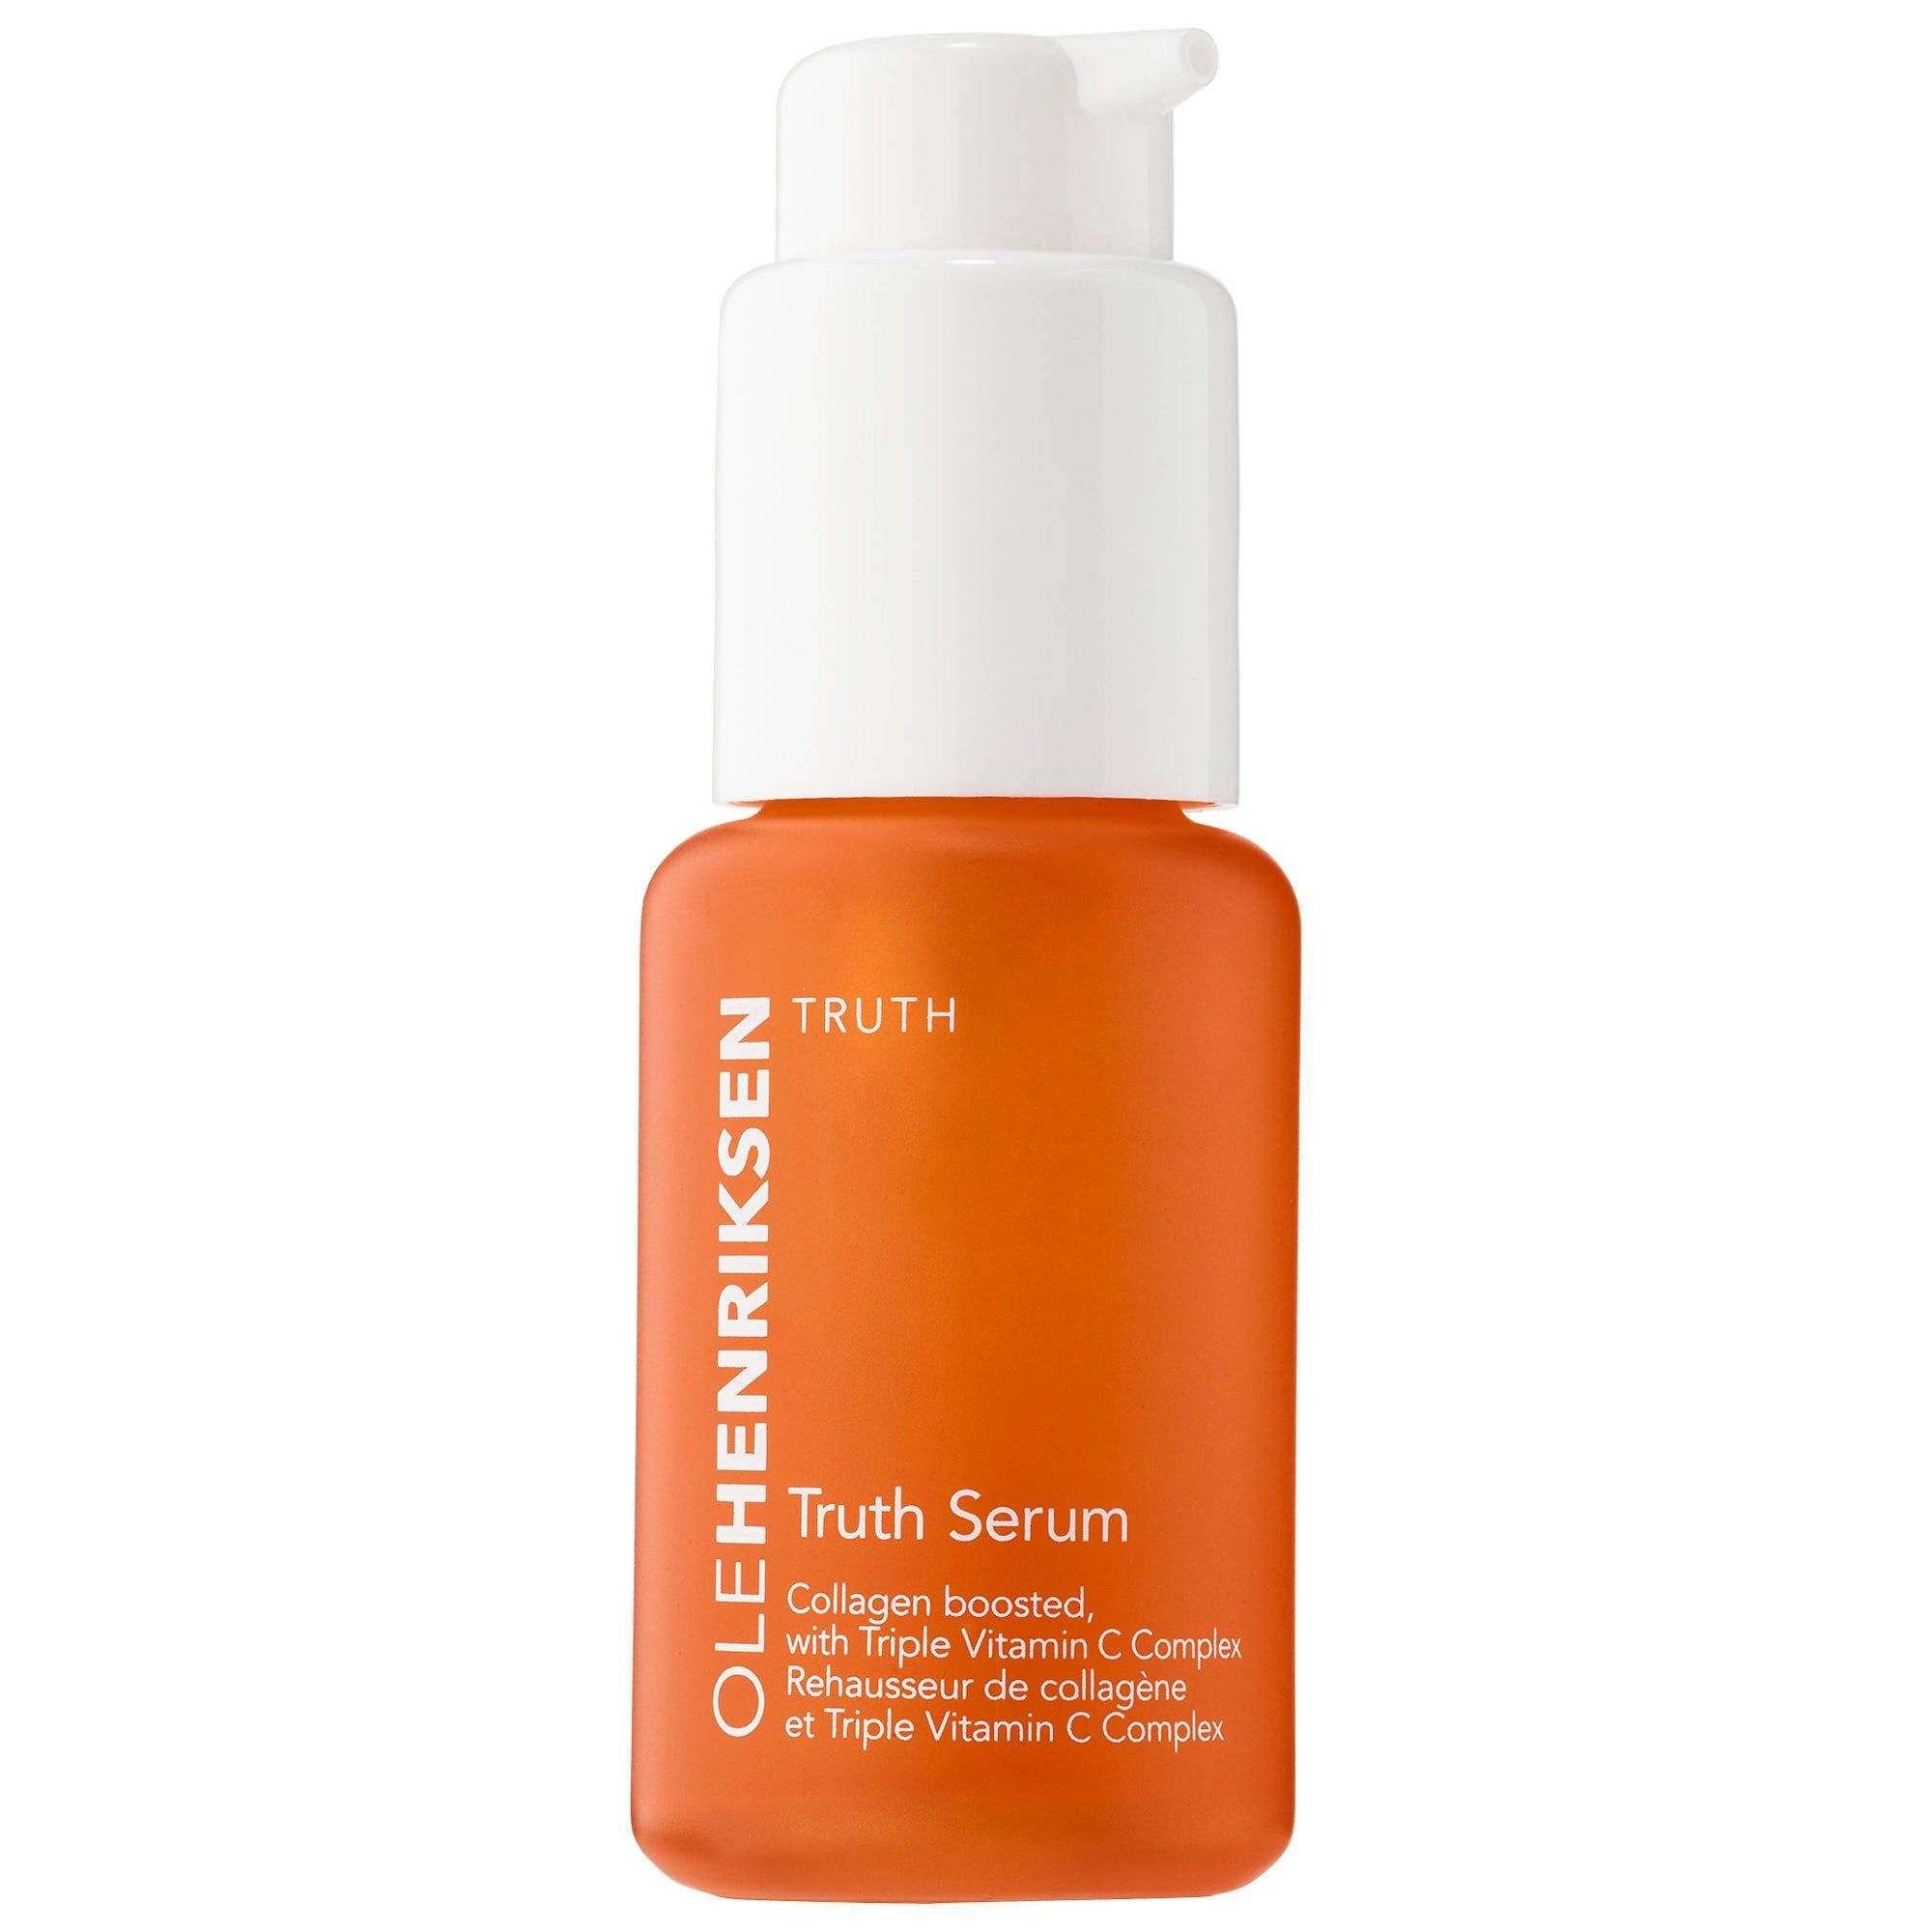 """Best for Brightening Truth Serum OLEHENRIKSEN sephora.com $49.00 SHOP NOW When scouring the aisles for acne treatments, Dr. Idriss suggests looking for """"brightening agents such as kojic acid, niacin, vitamin C, licorice root extract that help reduce the effects of pigmentation."""""""